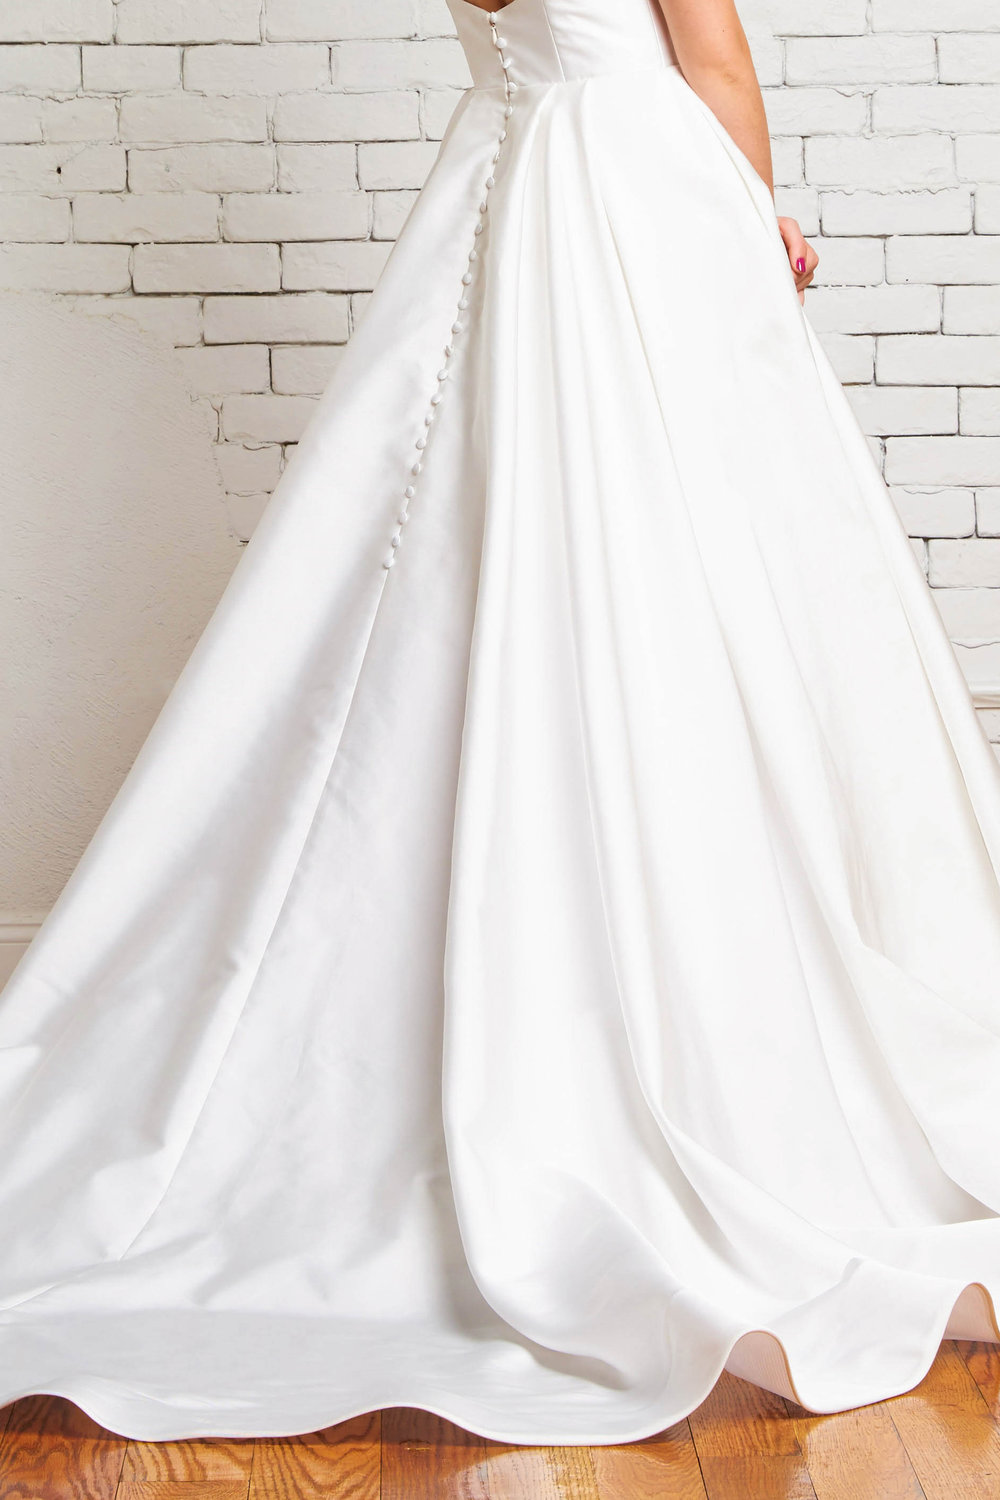 Reese Back-Rebecca Schoneveld-Modern_ballgown_buttons_simple_chic_wedding.jpg